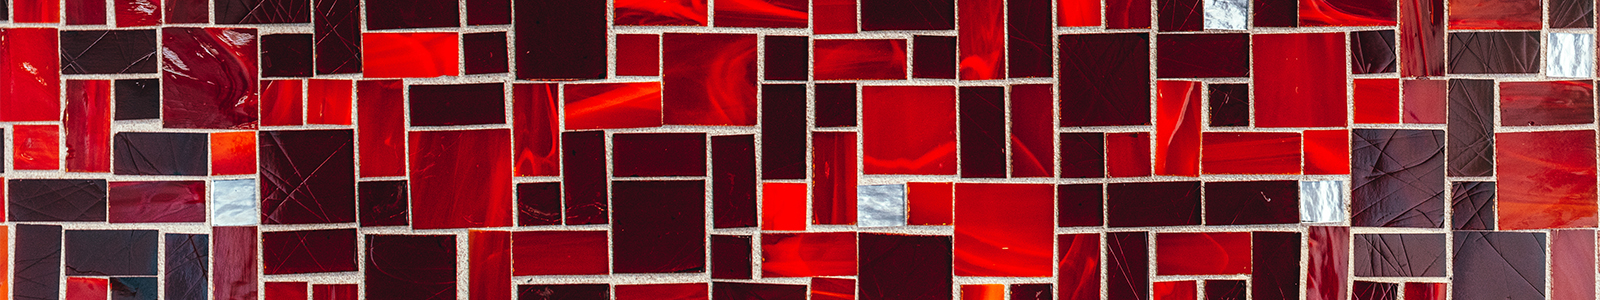 Red and white square tiles in the Robin's Nest Café.